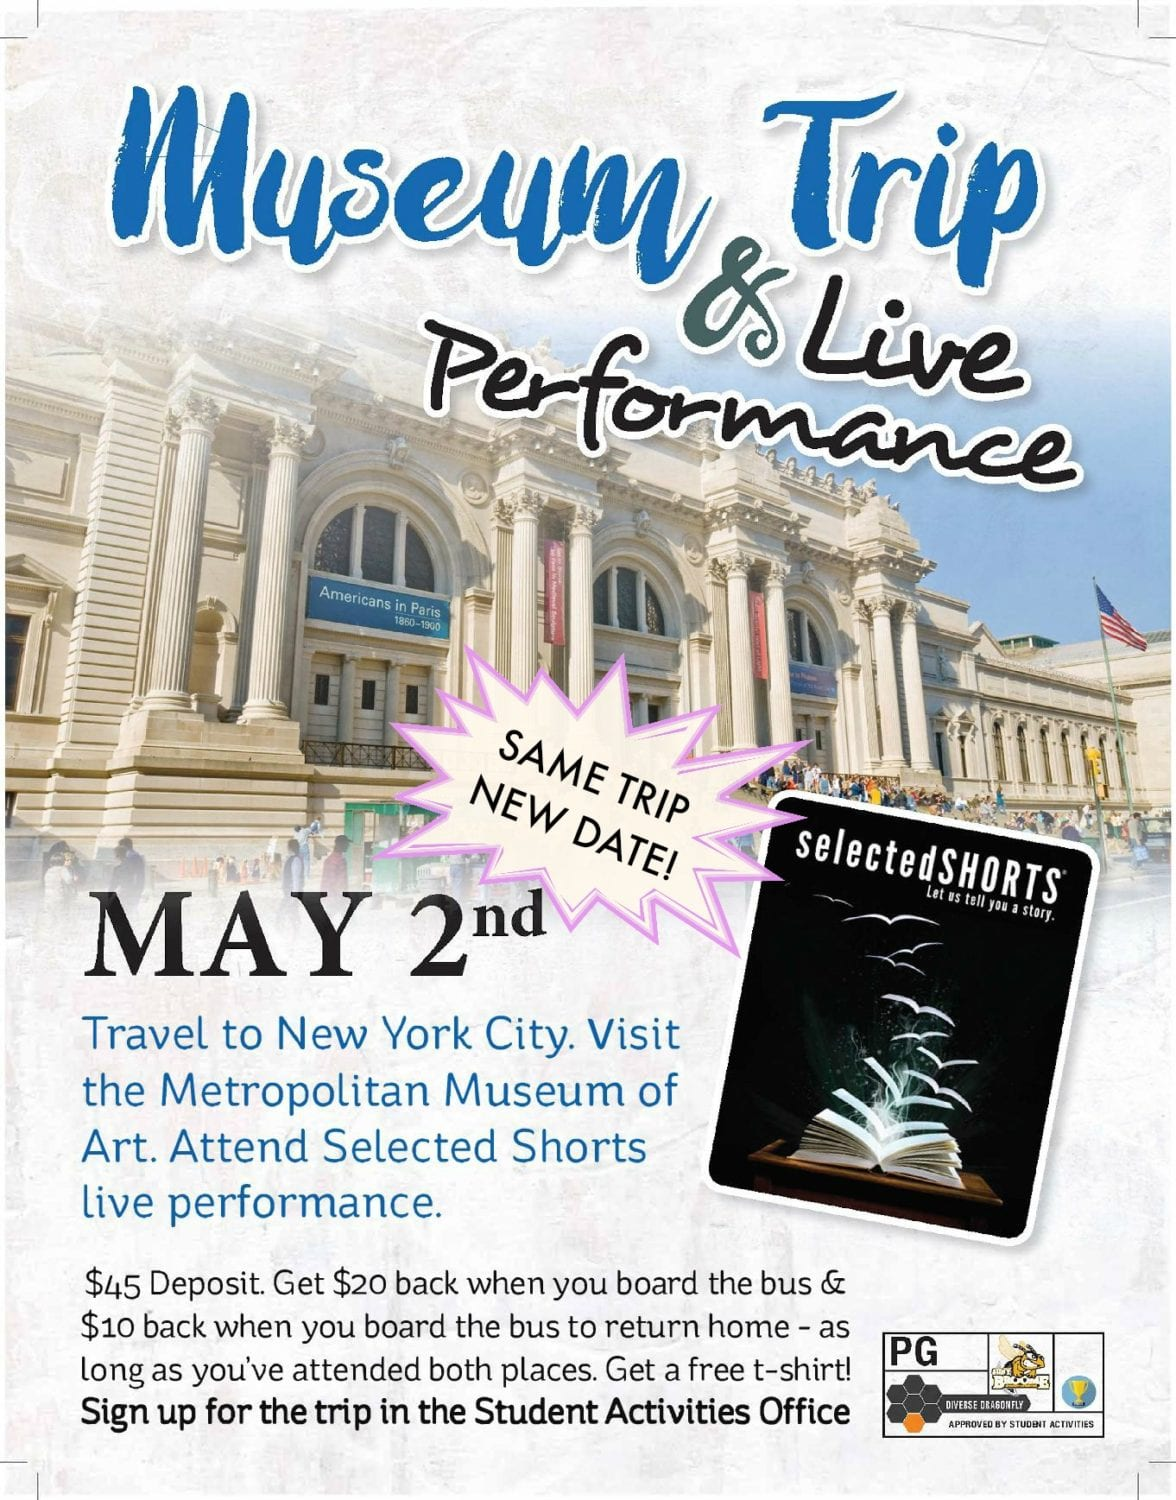 NYC Museum Trip & Live Performance on May 2